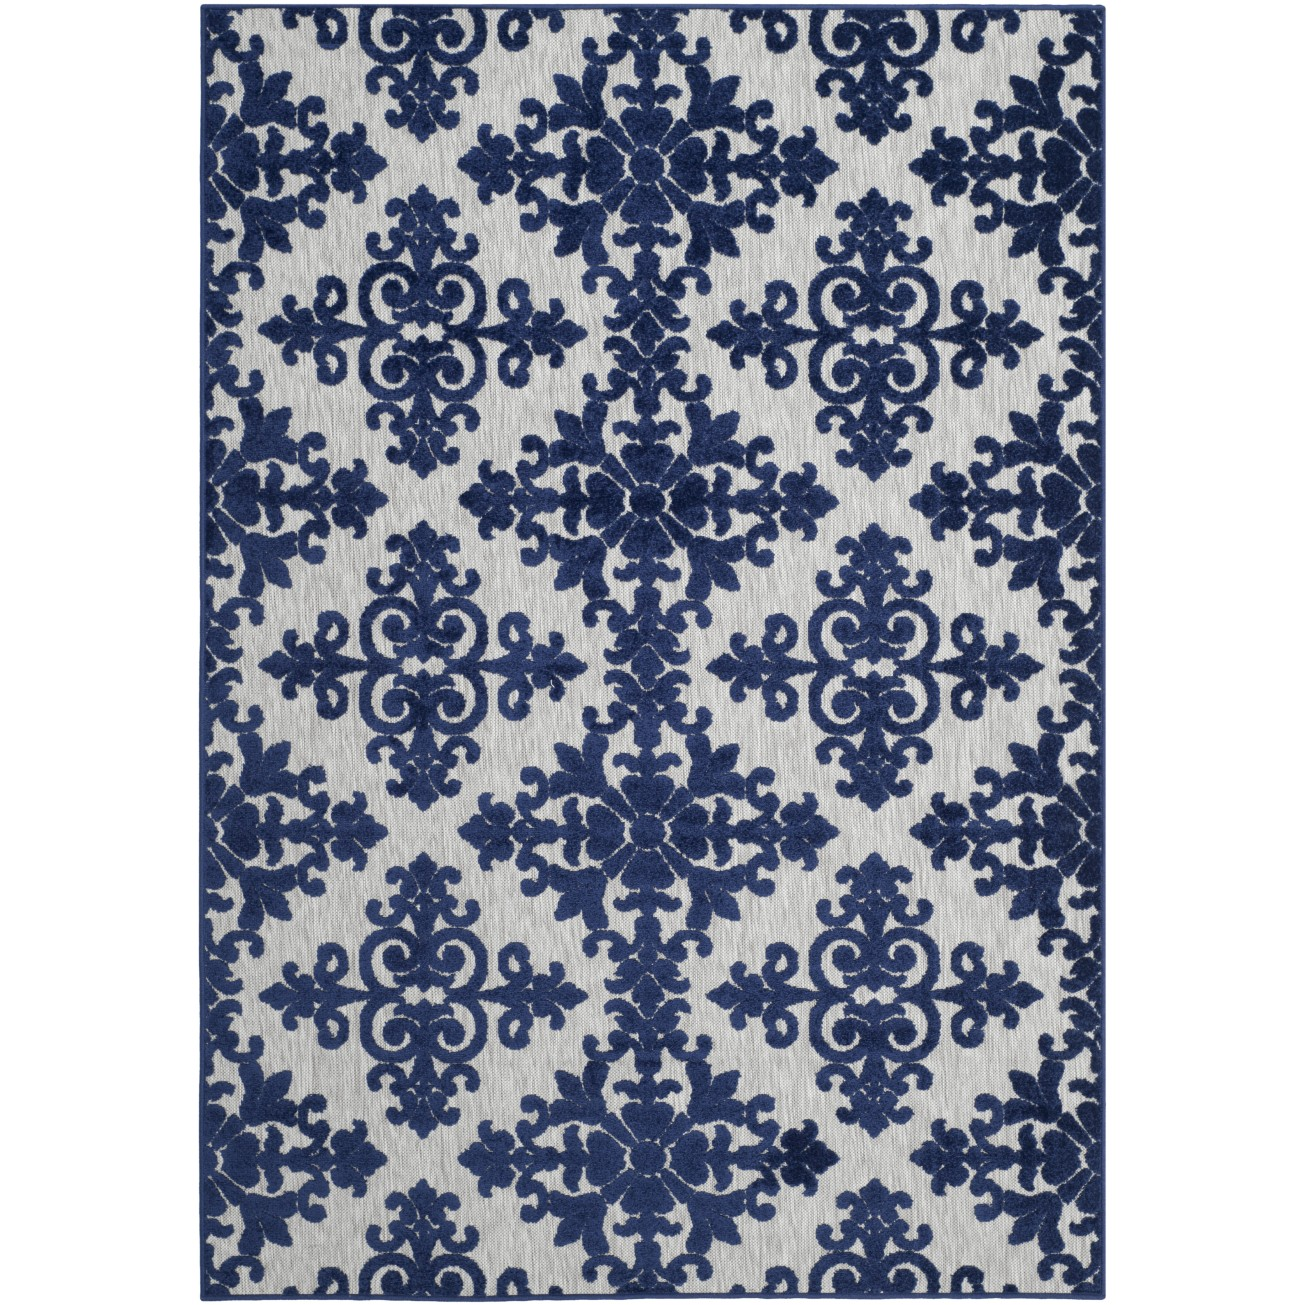 Alexander-Indoor-Outdoor-Rug-THRE1774